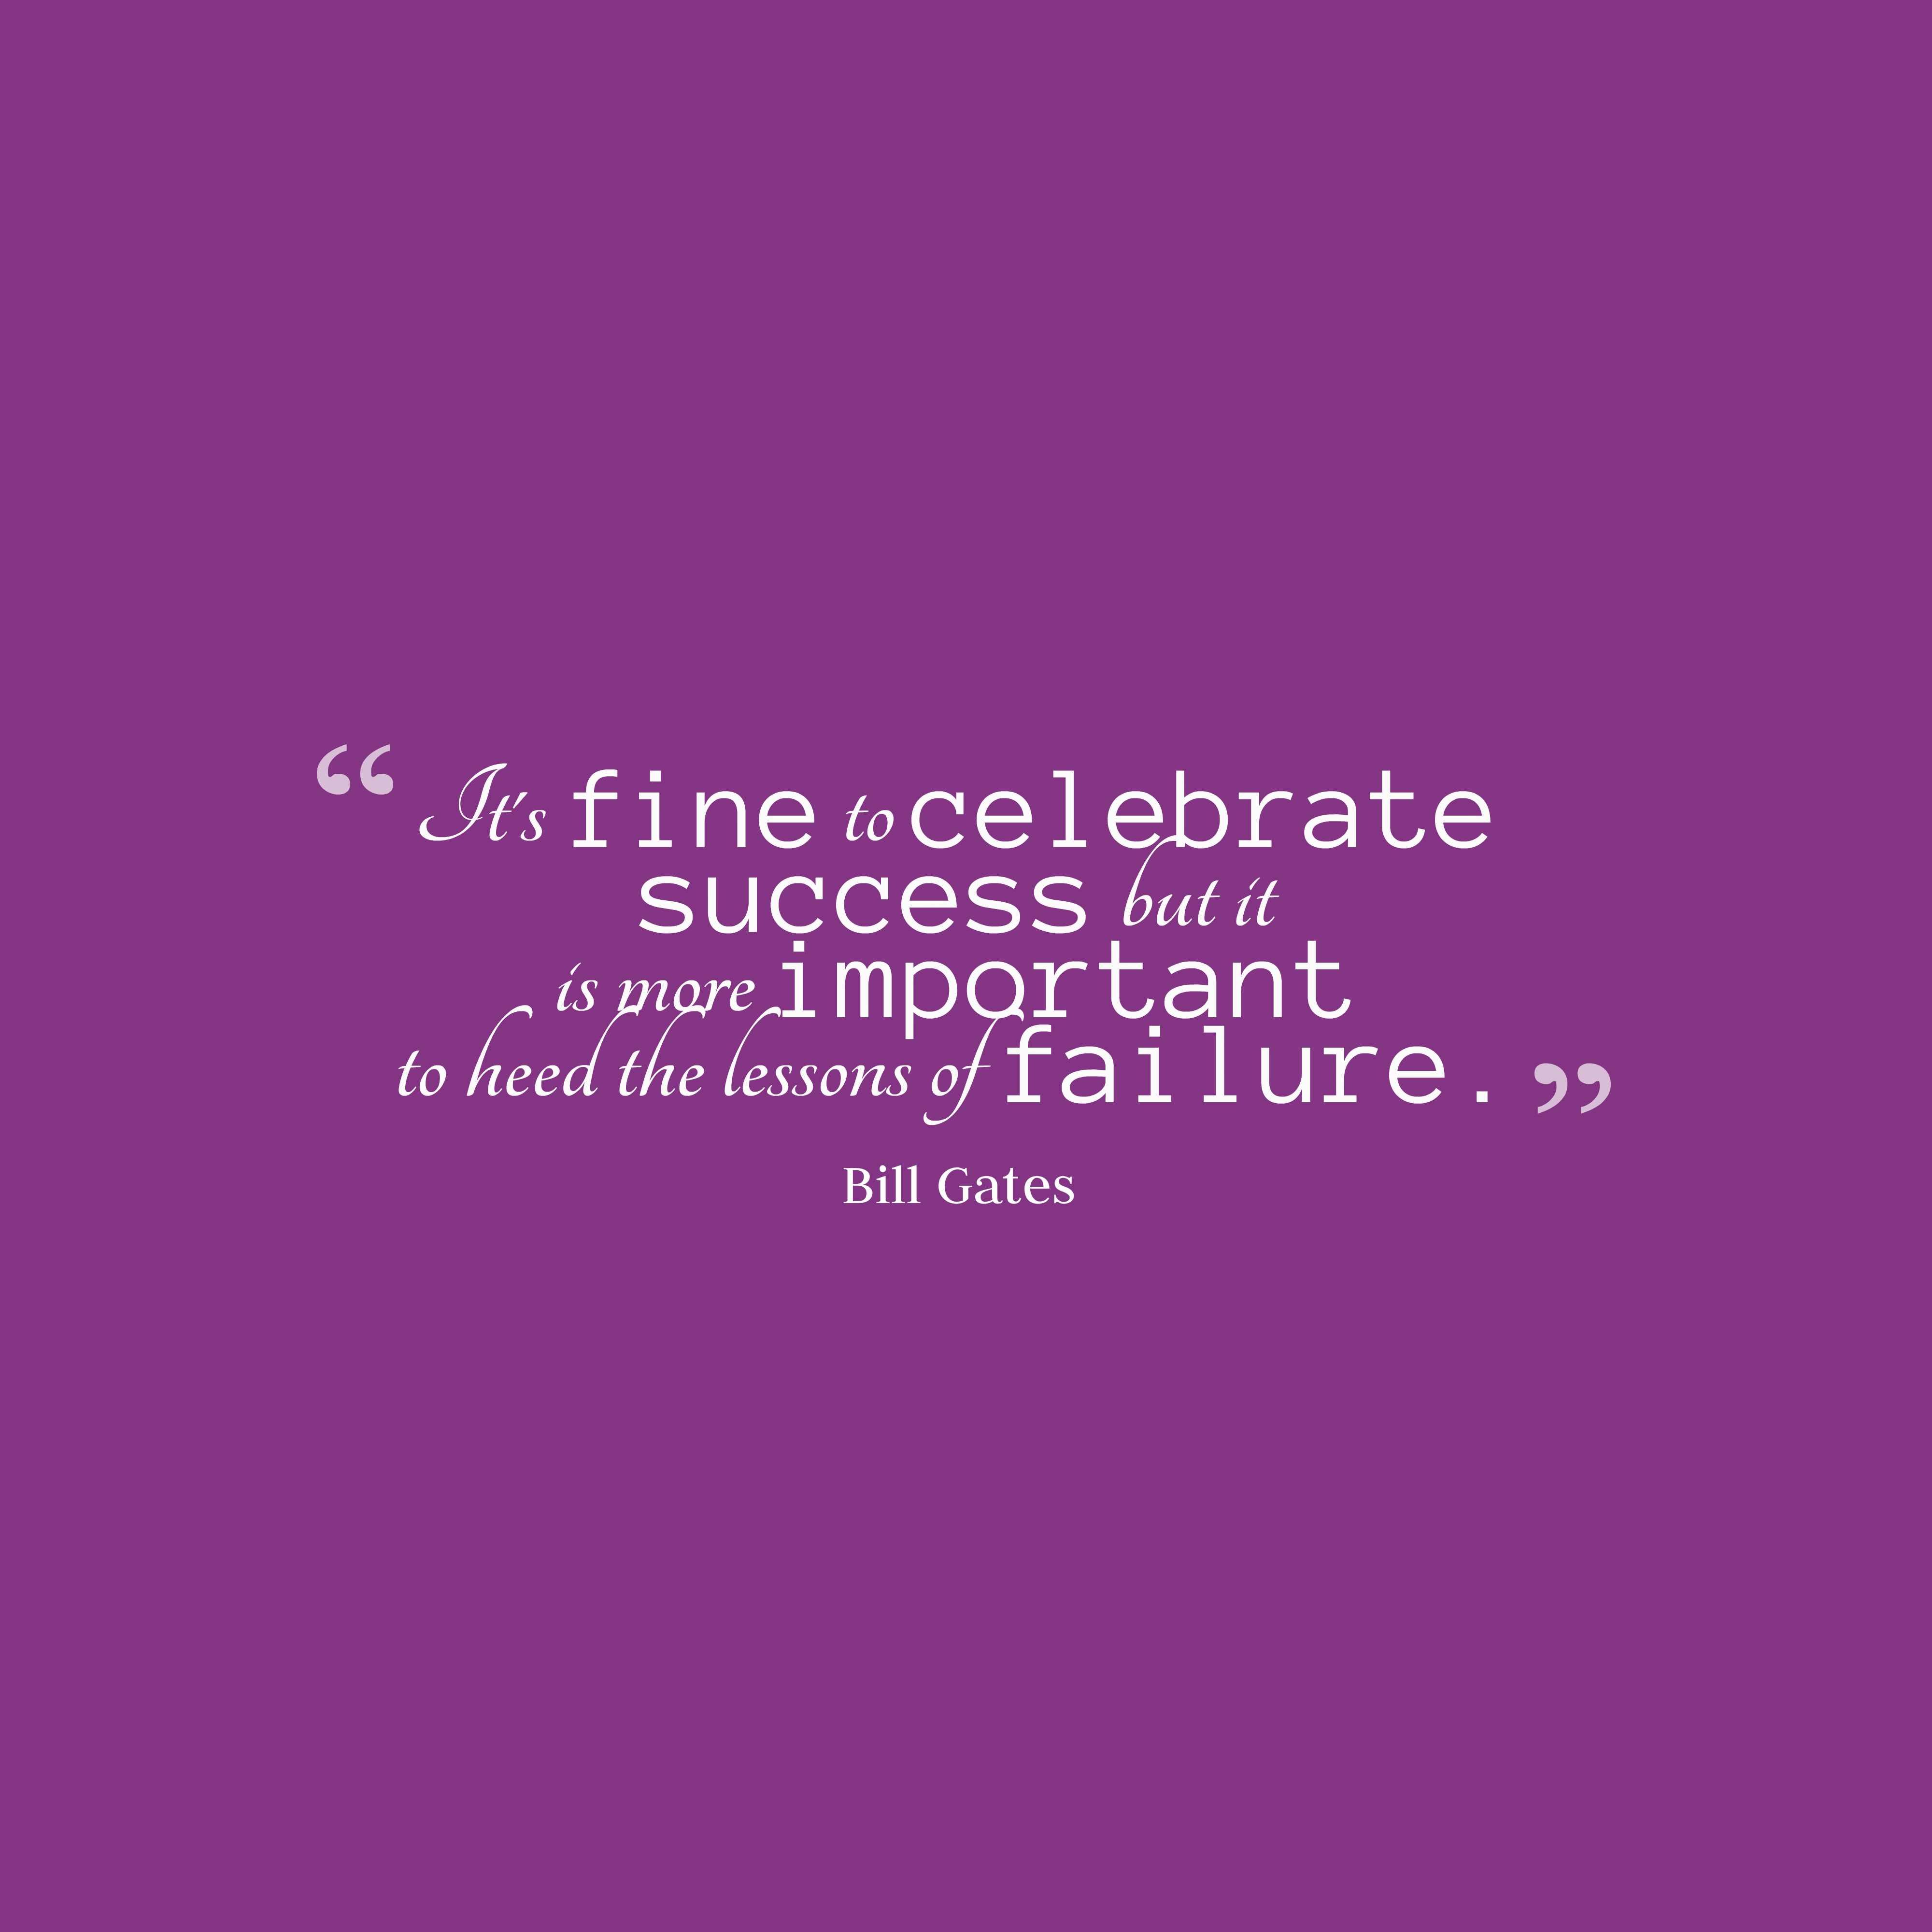 Quotes image of It's fine to celebrate success but it is more important to heed the lessons of failure.